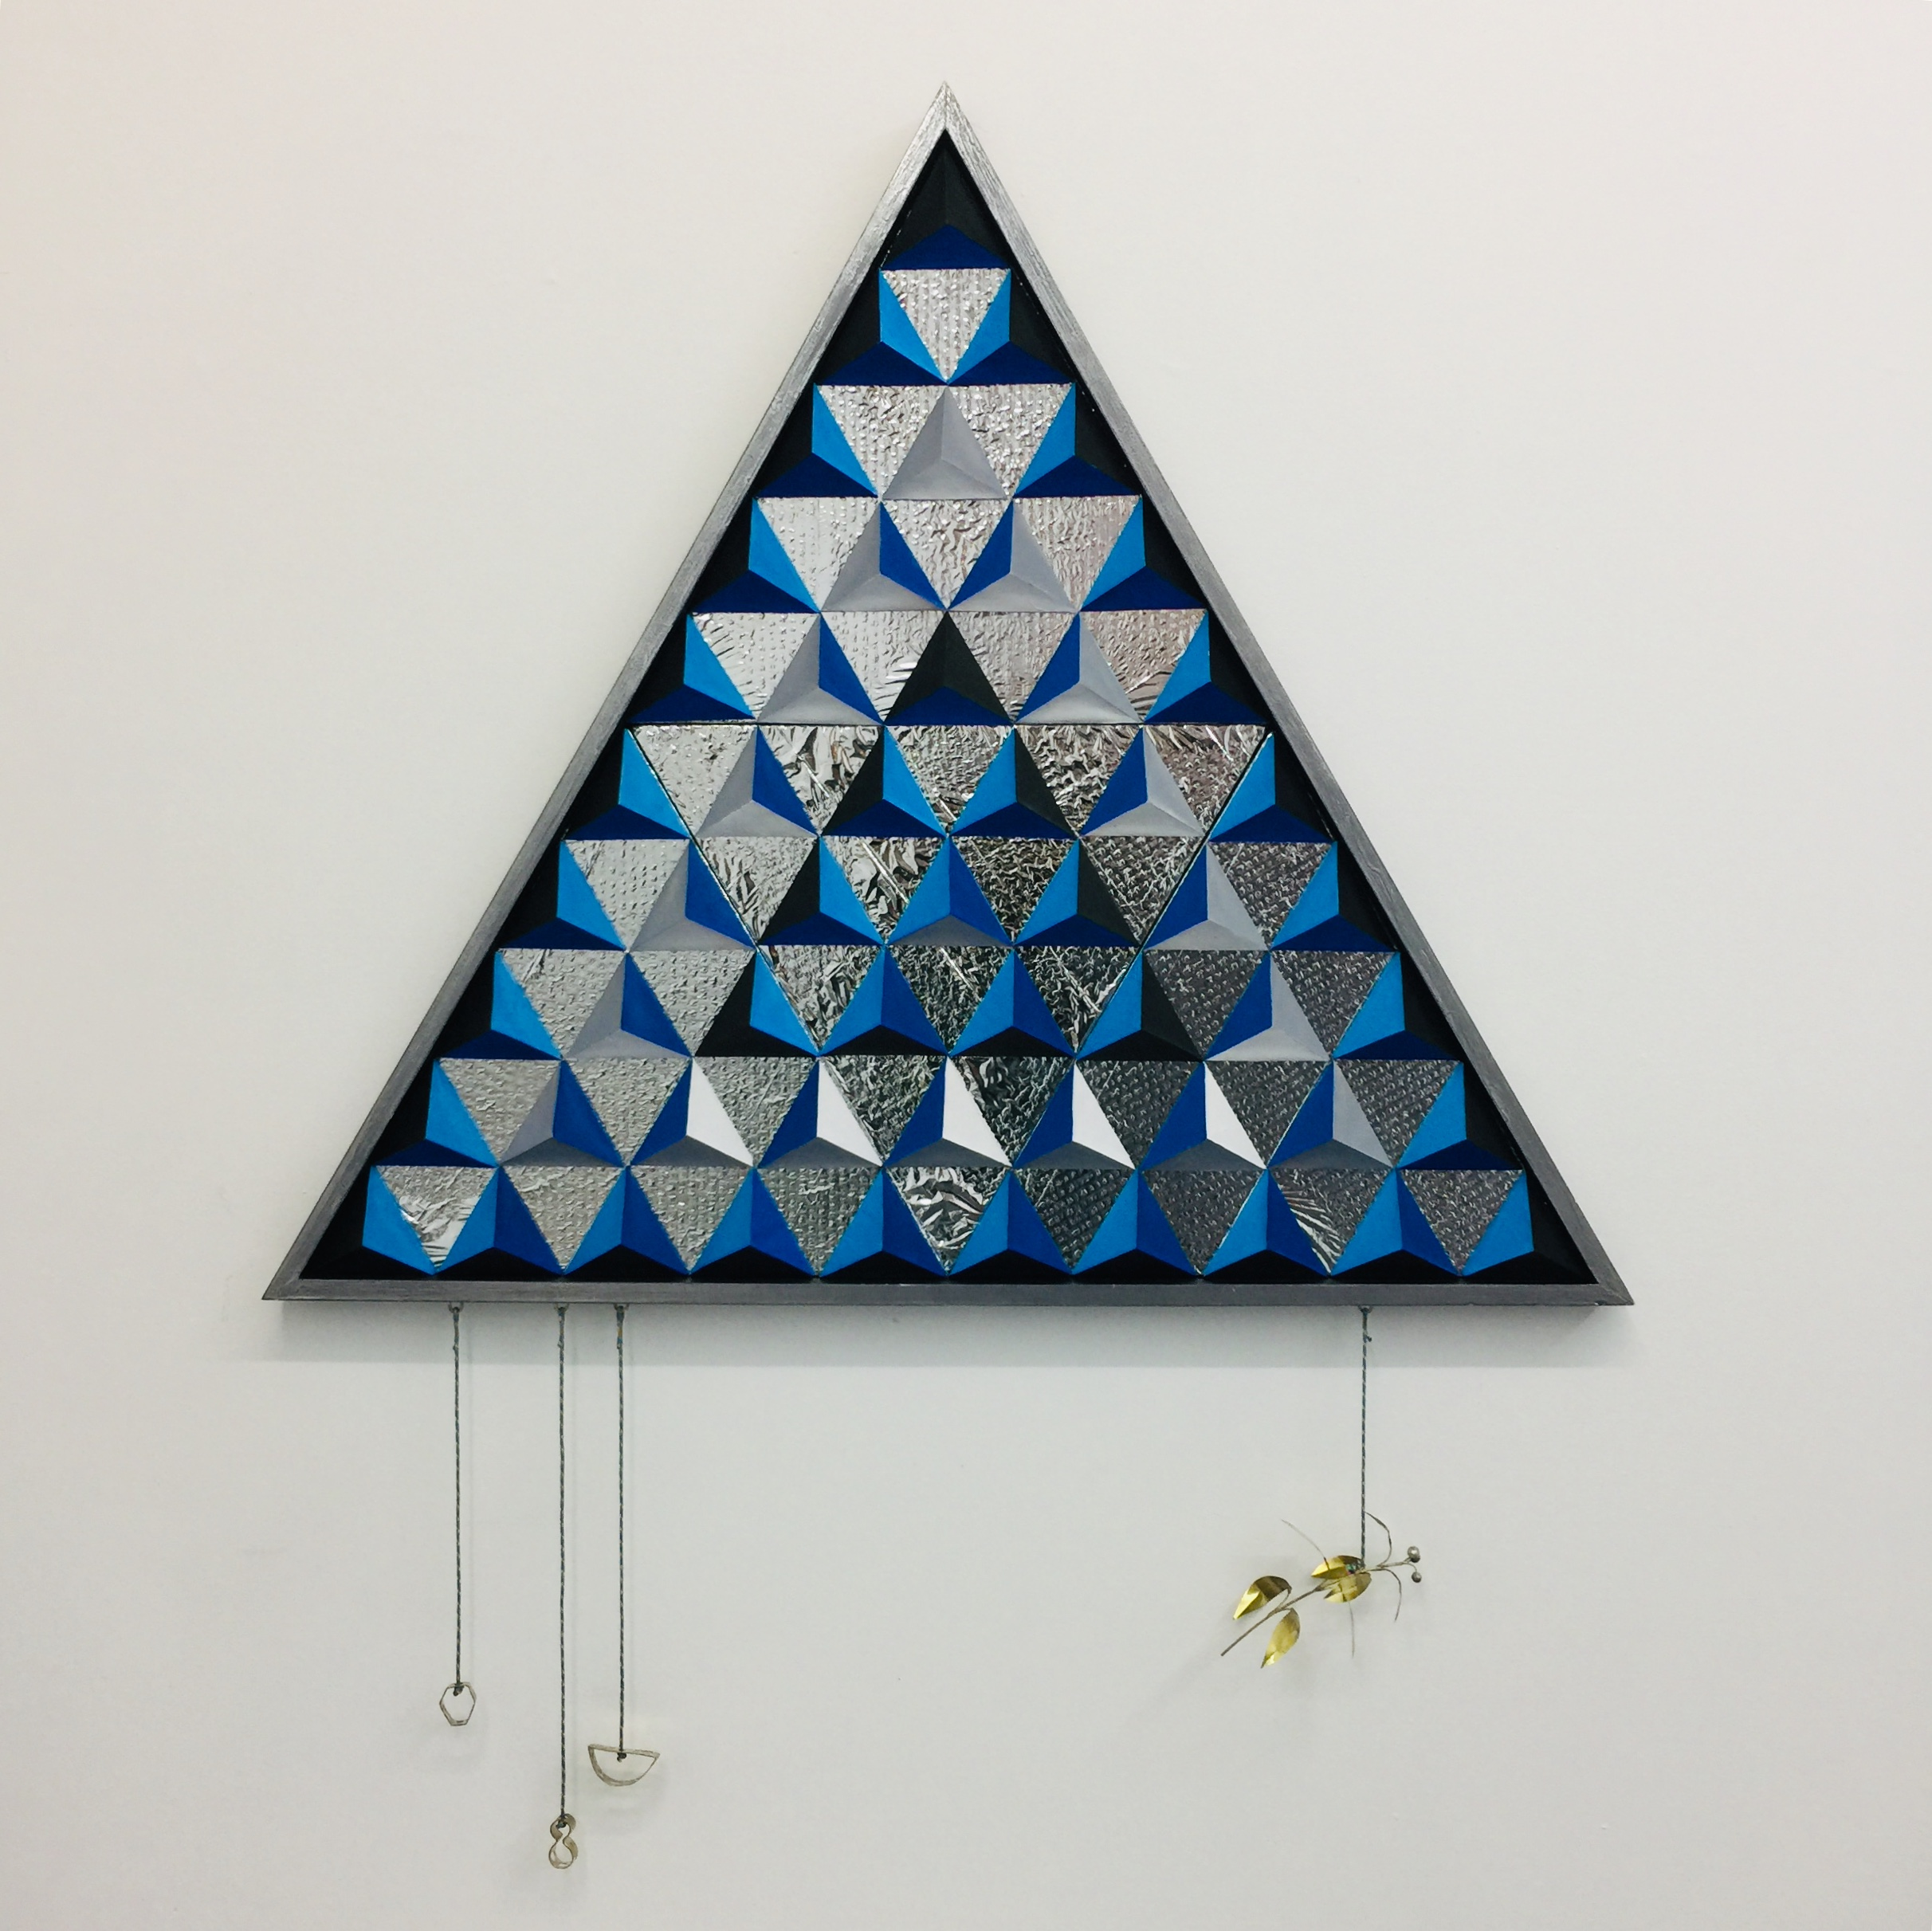 ANDY HUTSON  Think Like a Mountain,  2019 Paper, card, Tri-wall, timber, plywood, survival blanket, acrylic paint, brass, sterling silver, prusik cord 153 x 118 x 4.5 cm